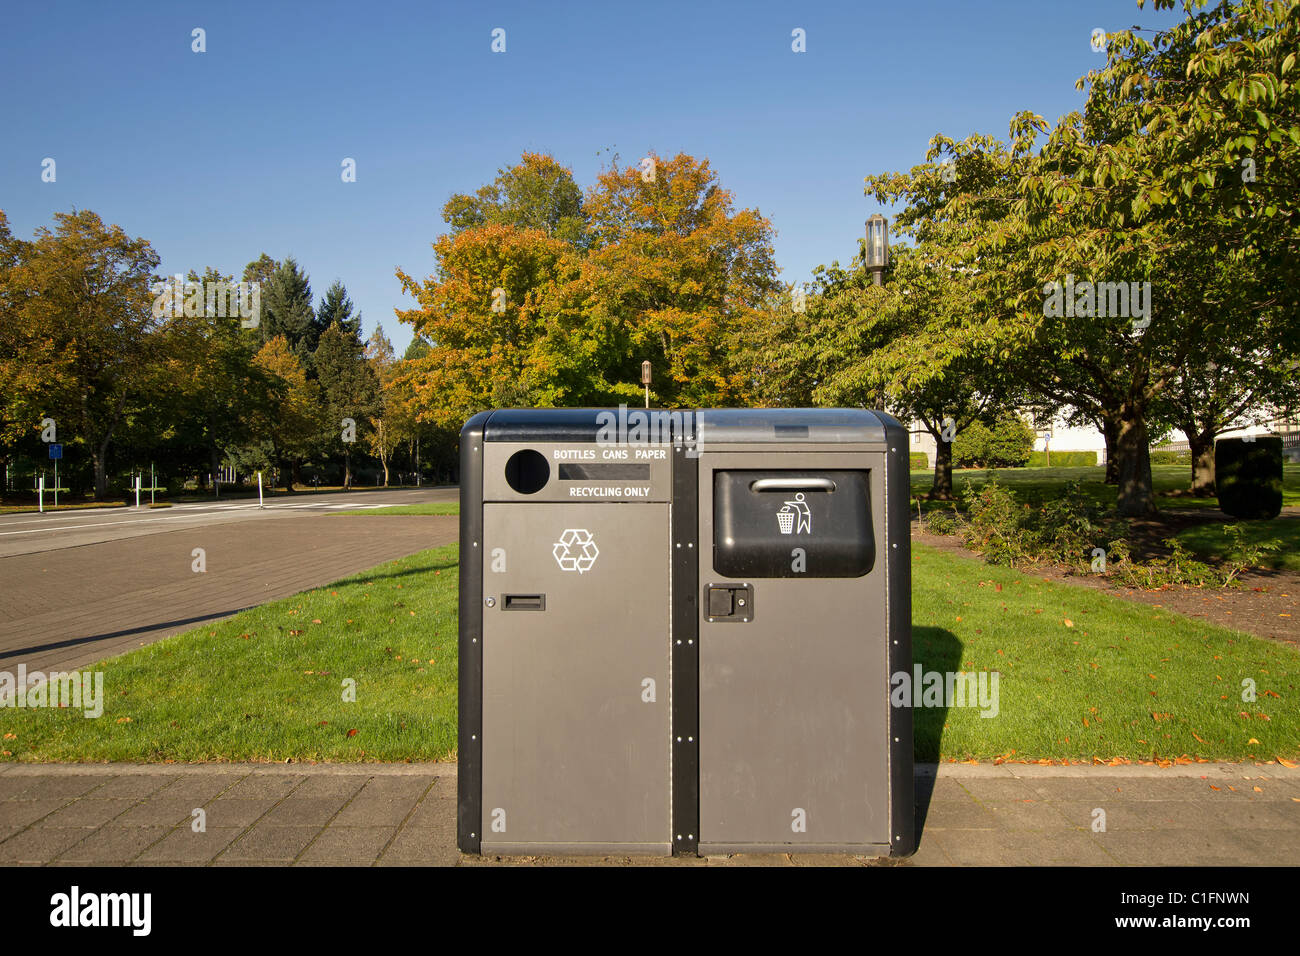 Public Parks Recycling and Trash Bins in Downtown - Stock Image